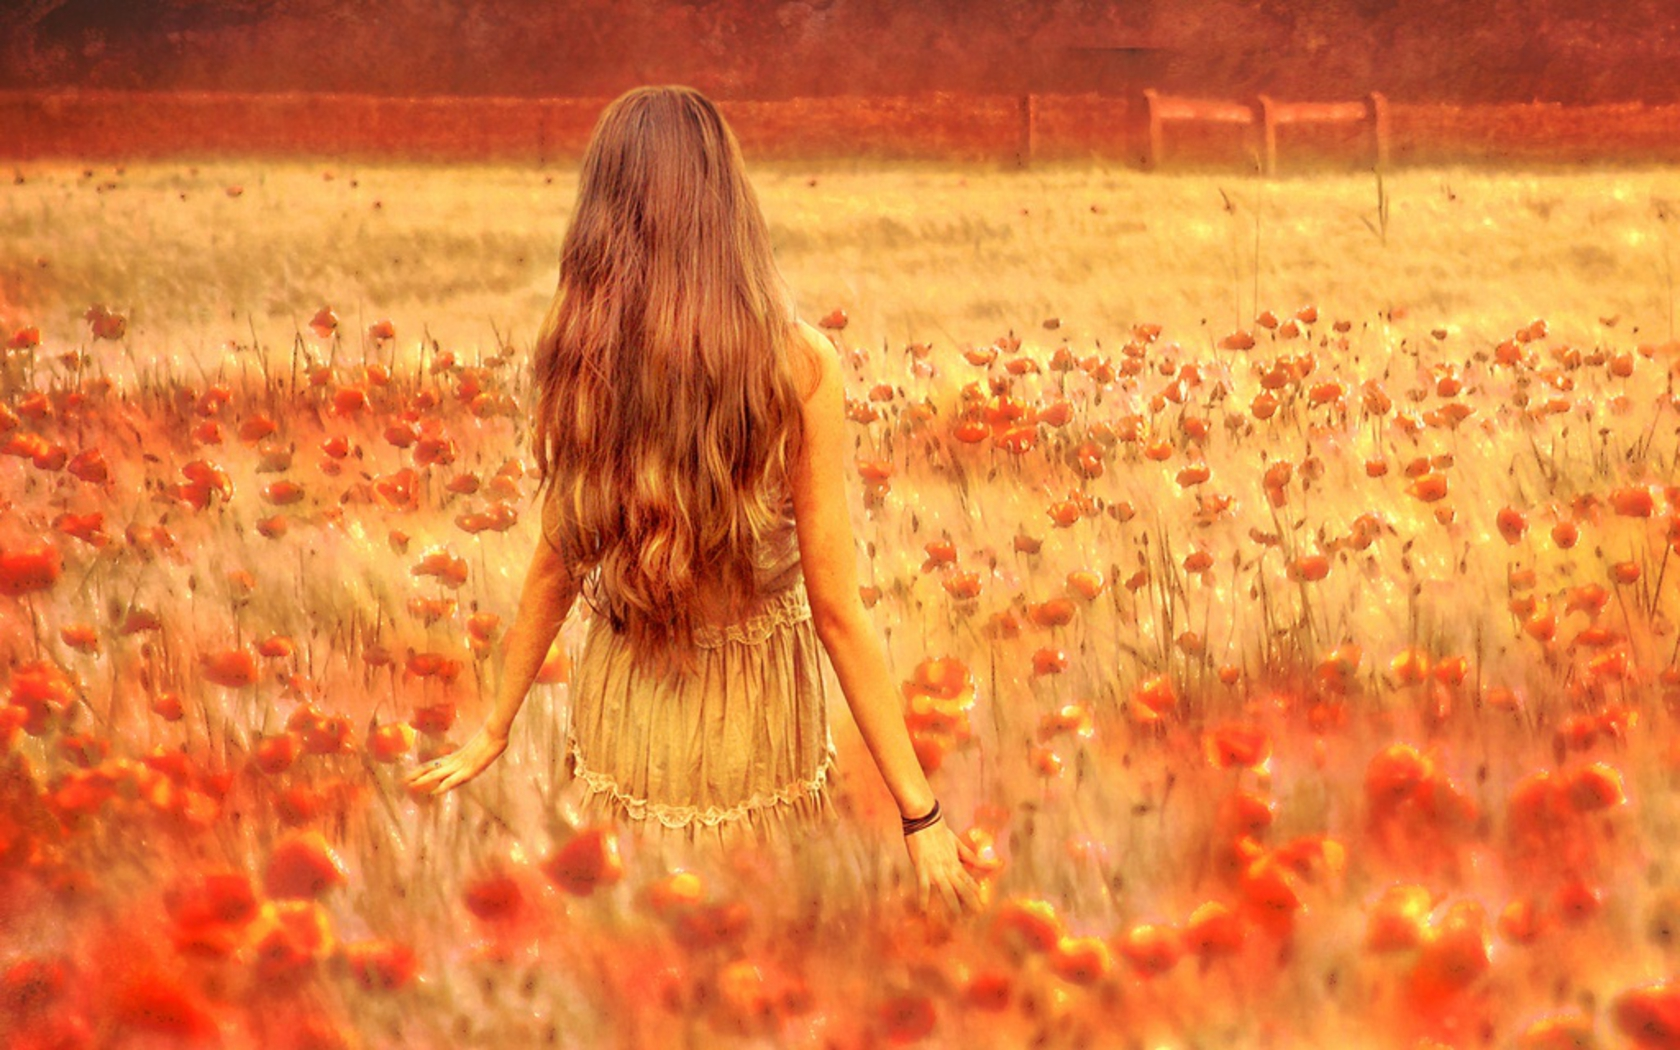 Fantasy - Women  Woman Flower Hair Wallpaper